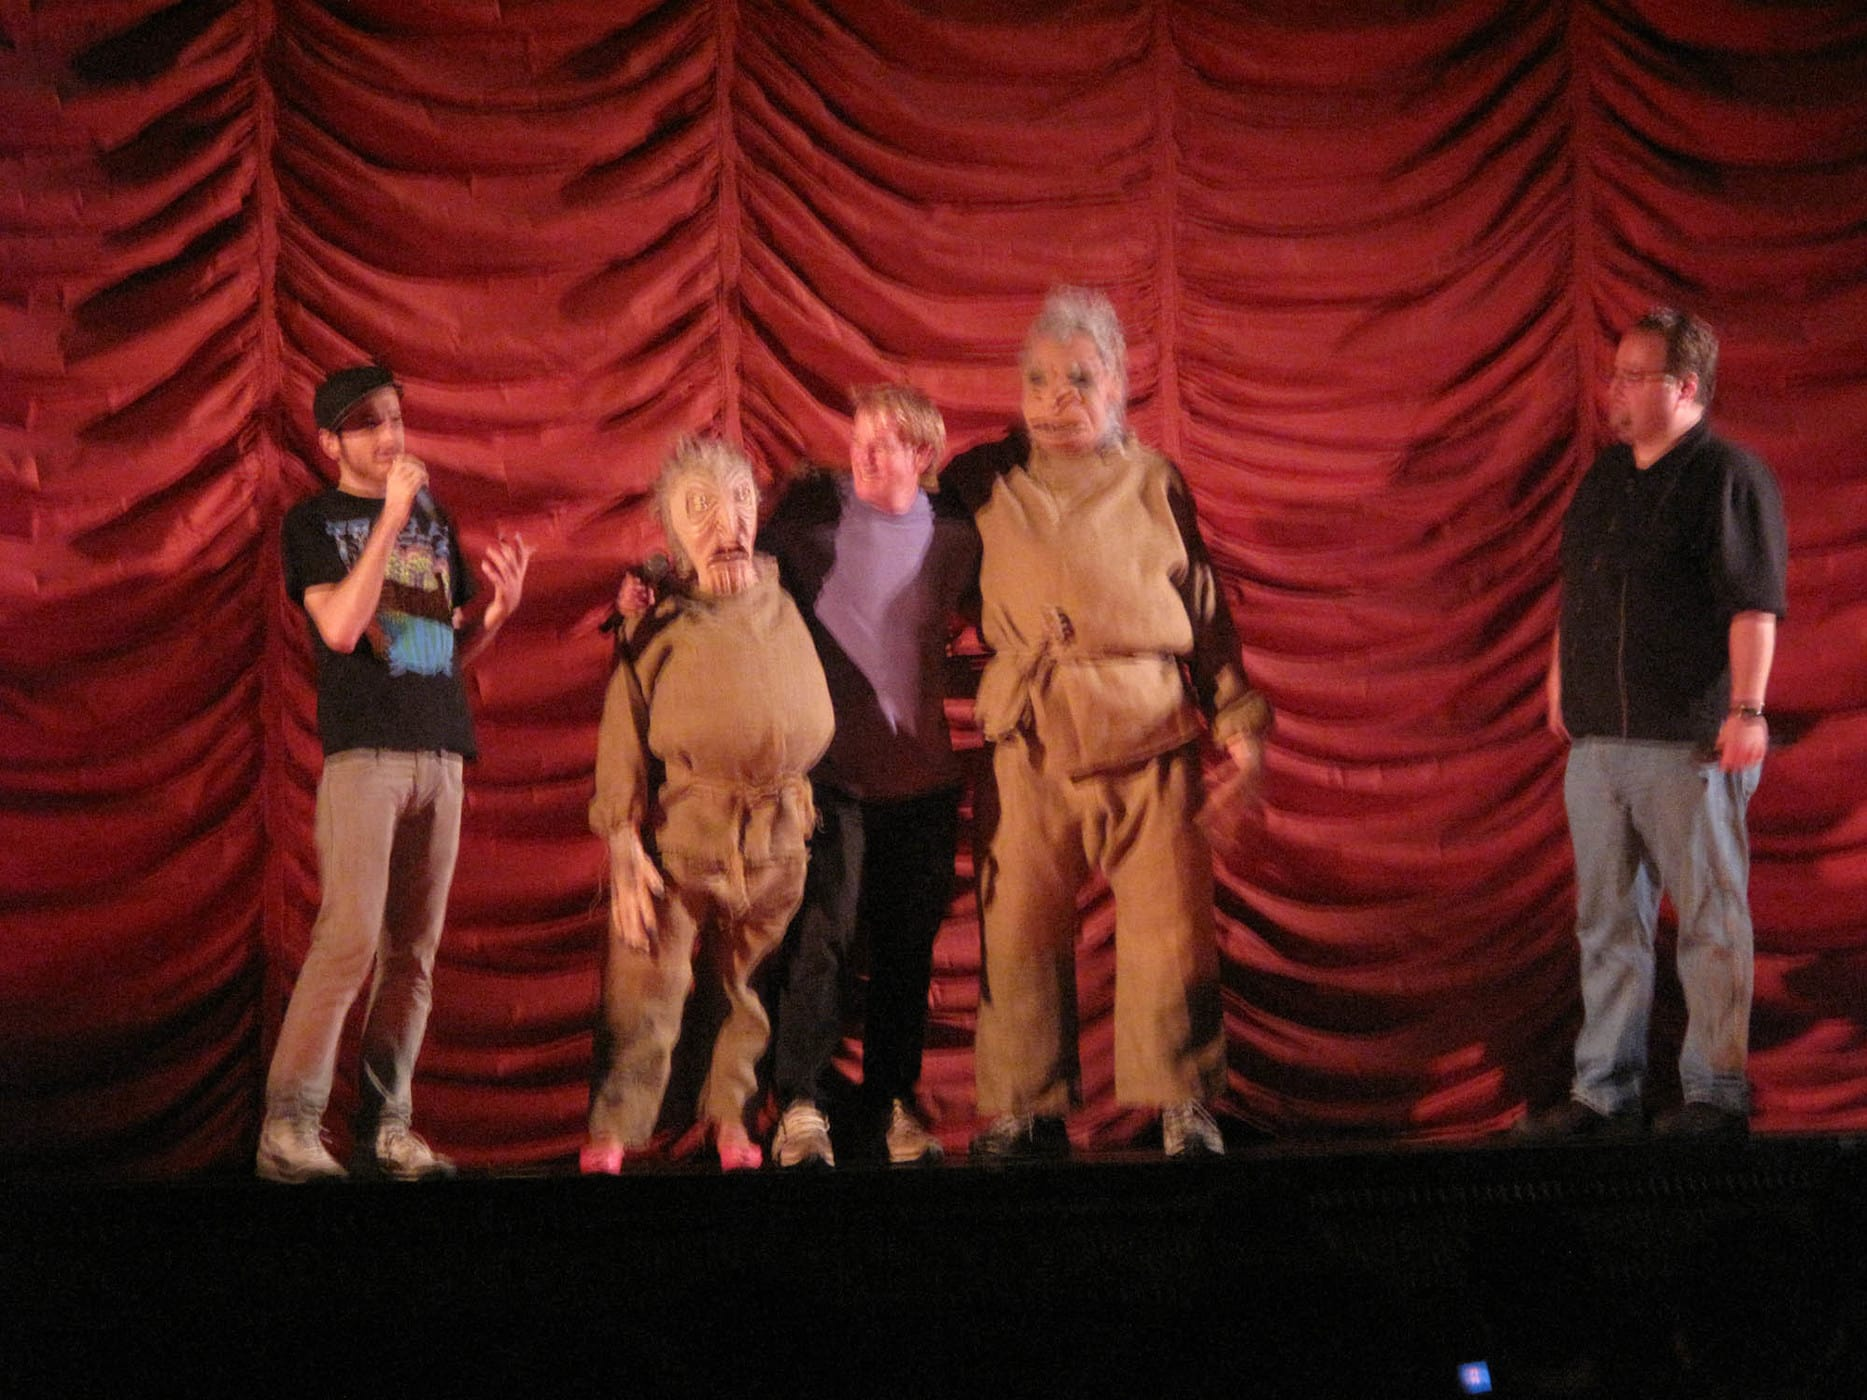 Troll 2 and Best Worst Movie screening at Music Box Theatre in Chicago, Illinois.